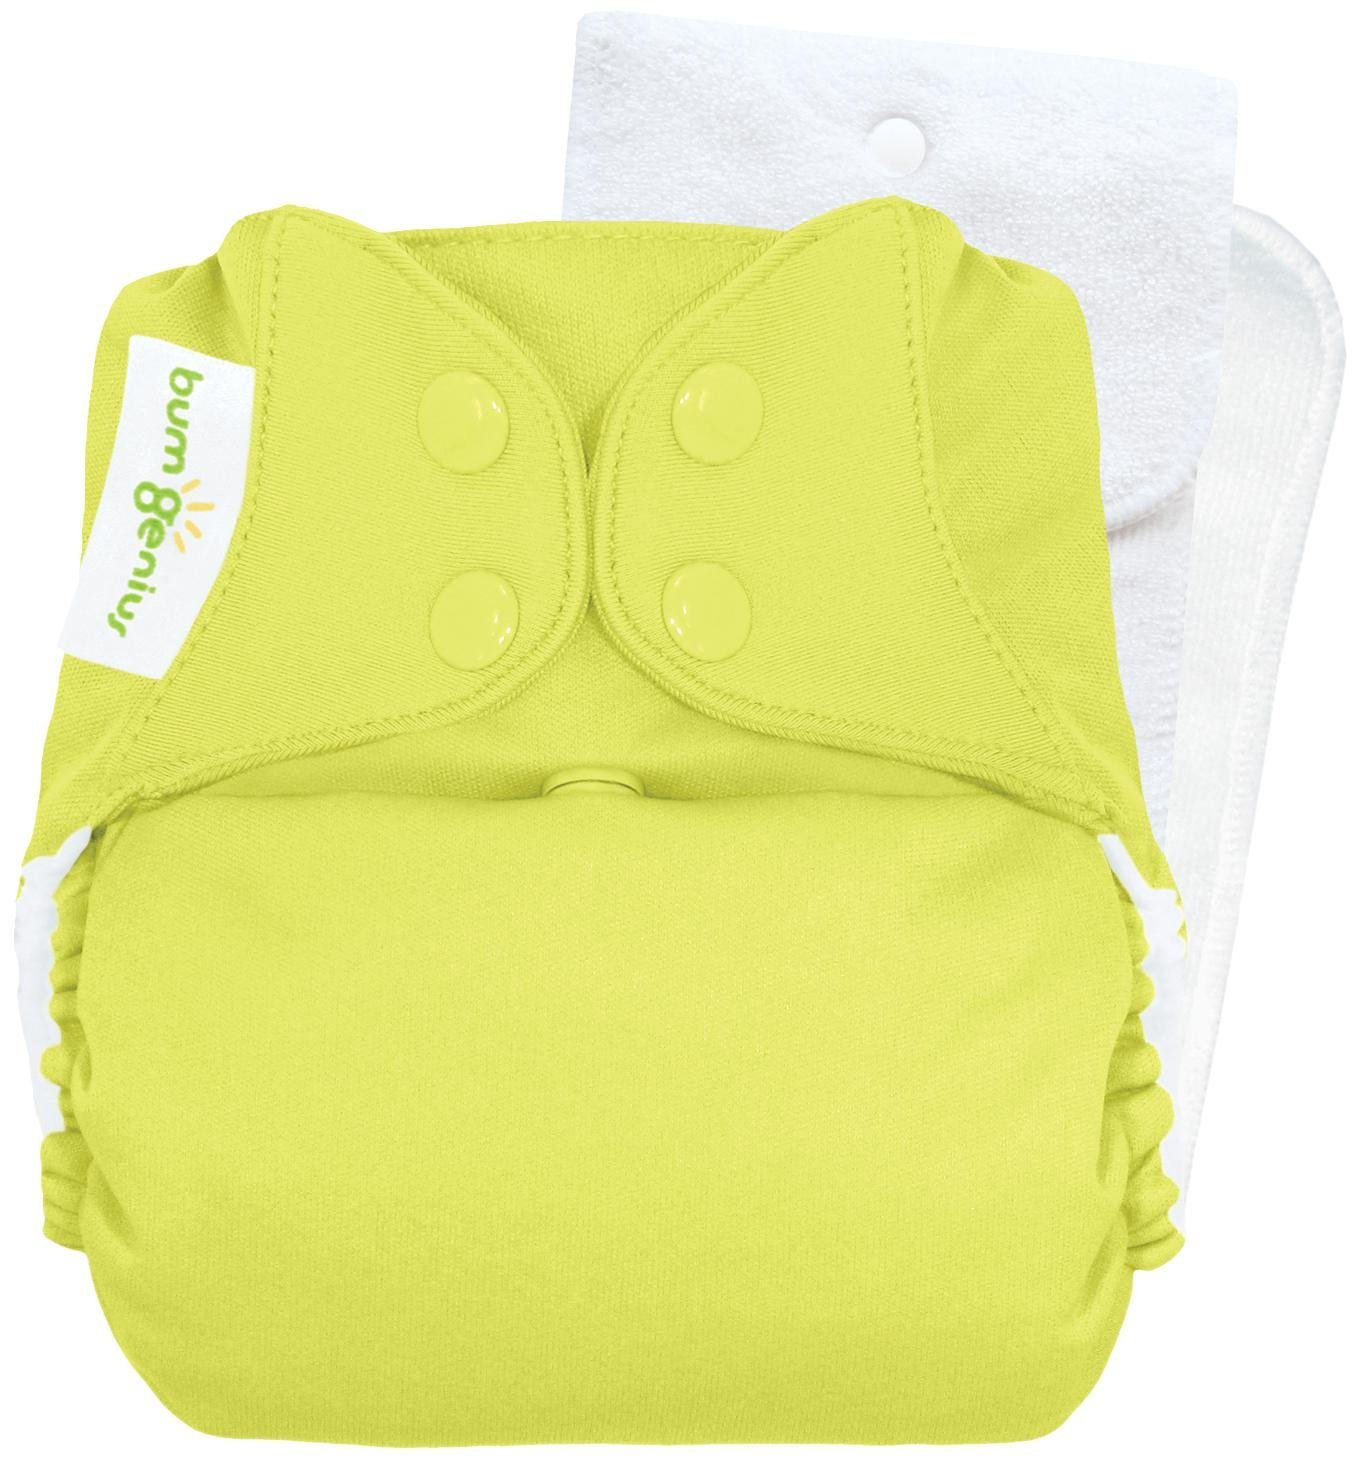 Bumgenius Cloth Diaper Jolly Citron Green One Size Snap